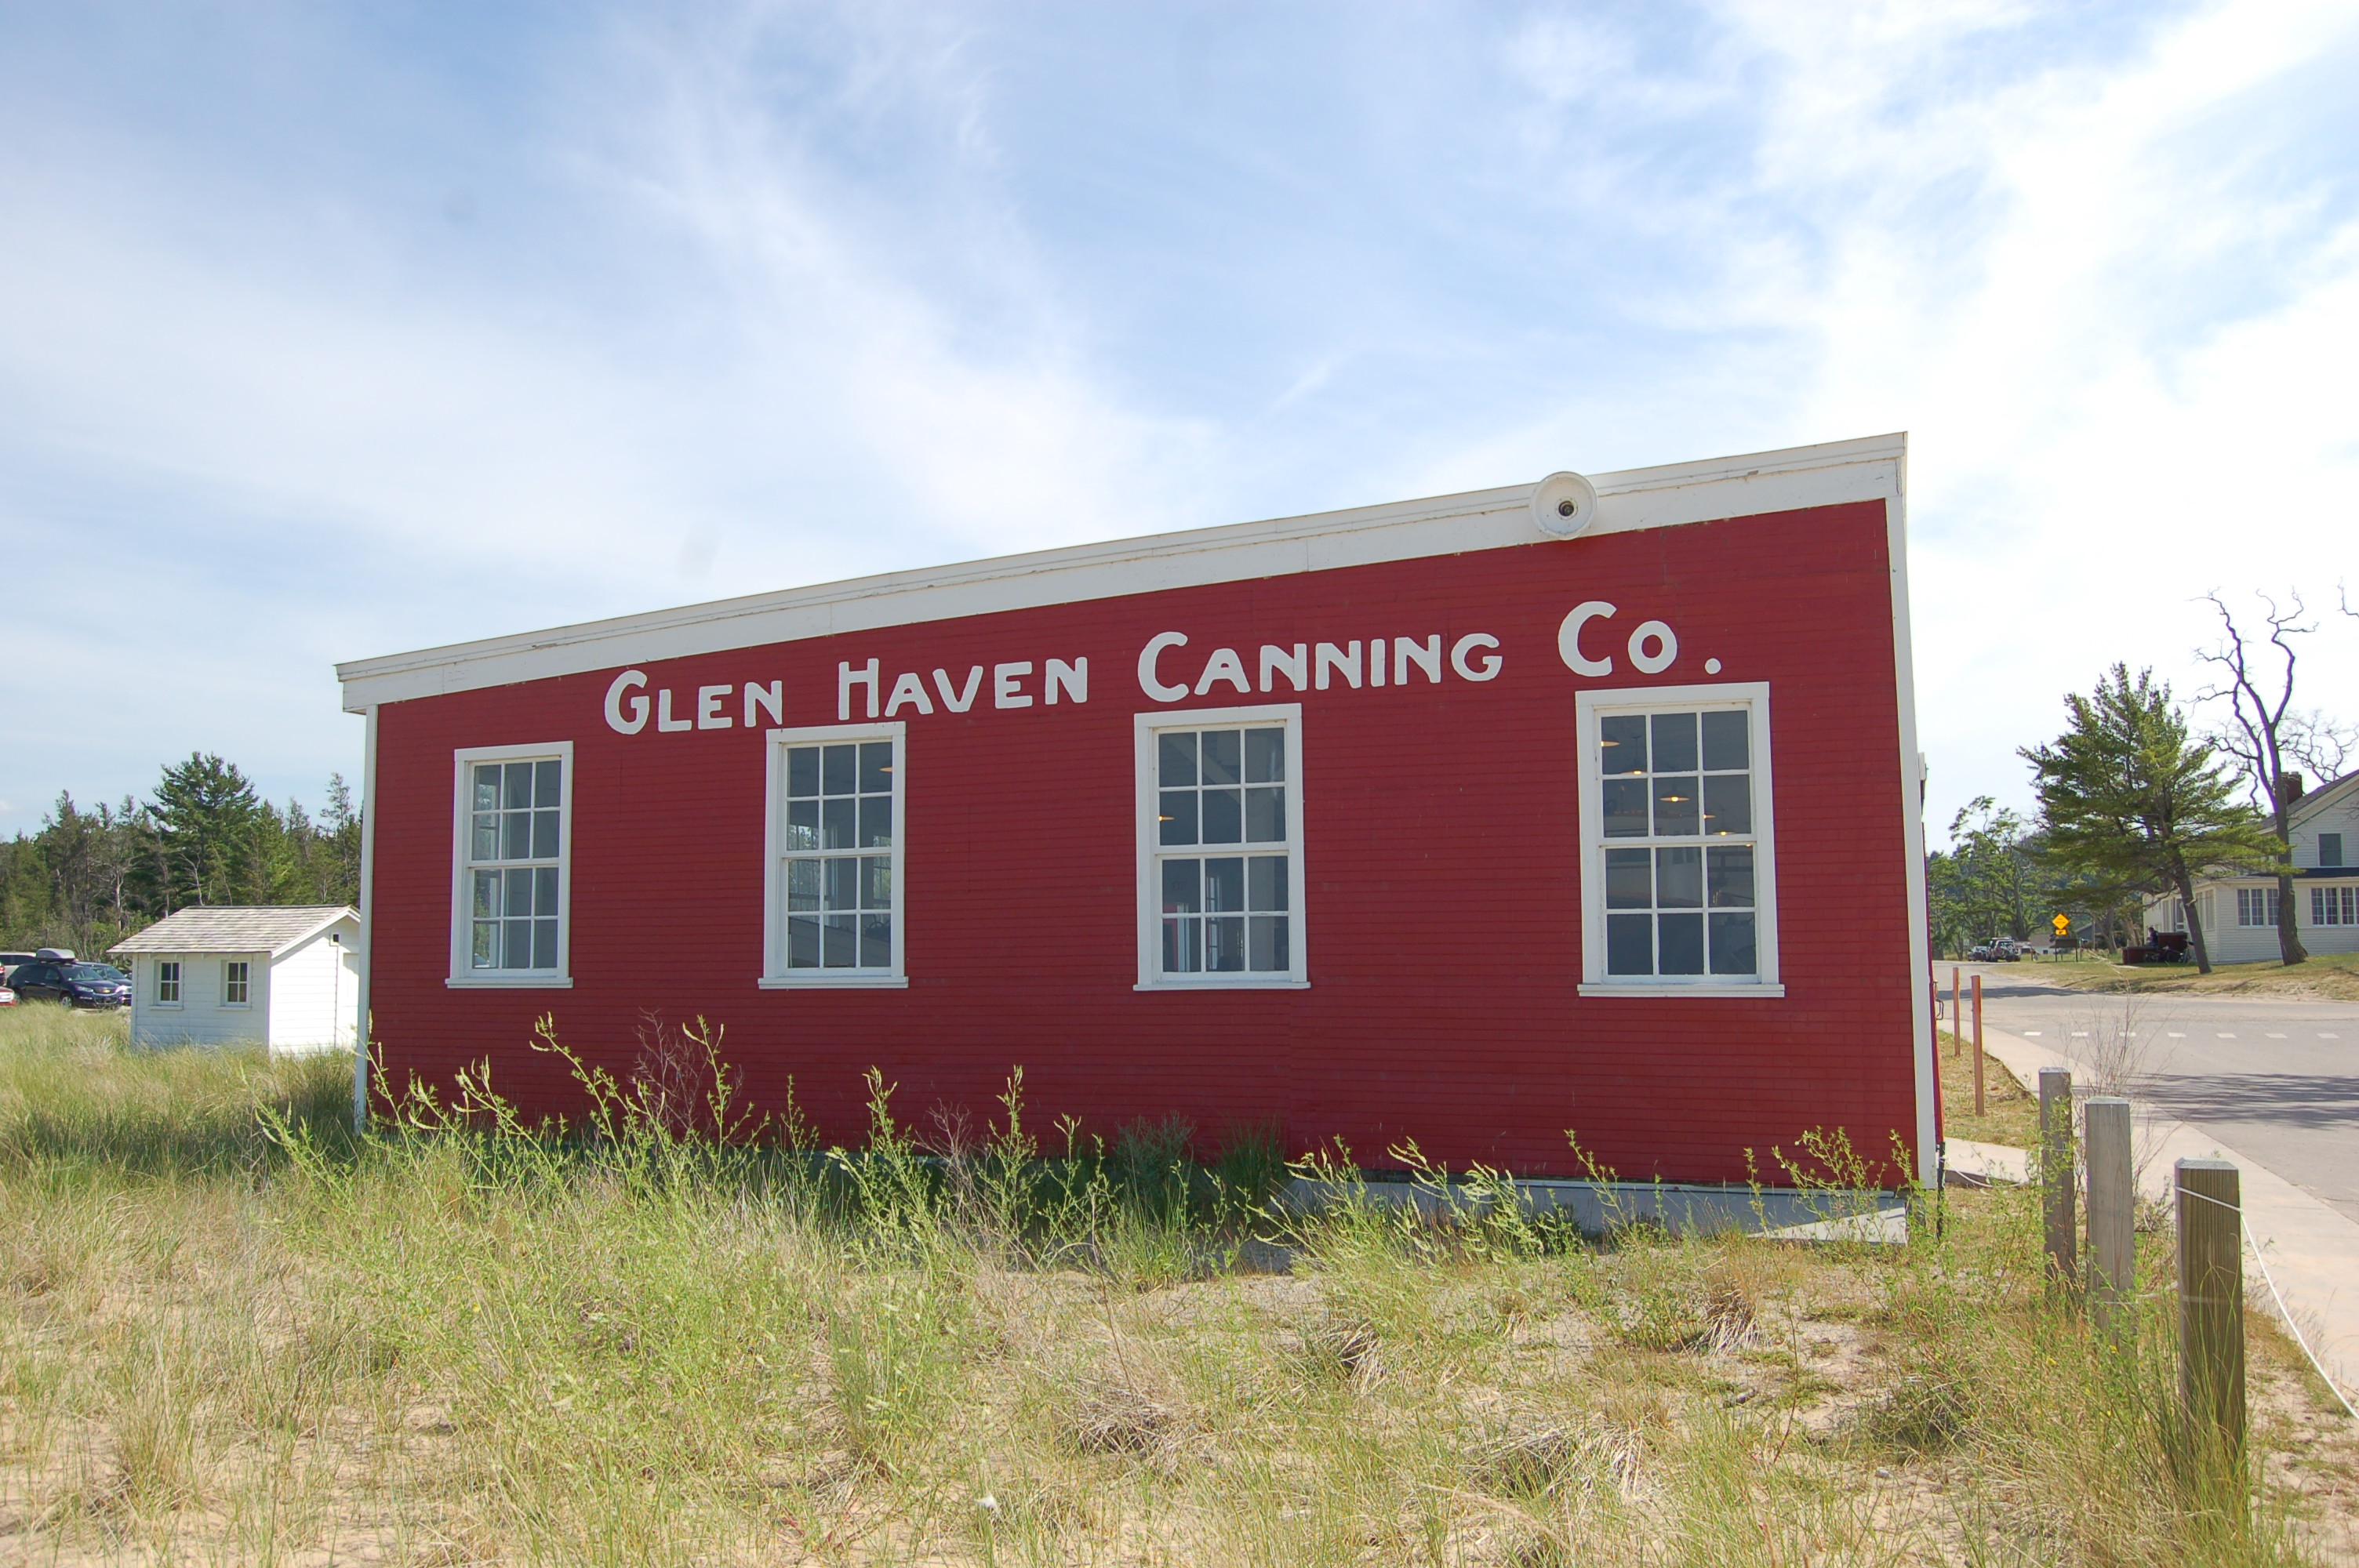 22 things to see at sleeping bear dunes national lakeshore for Glen haven